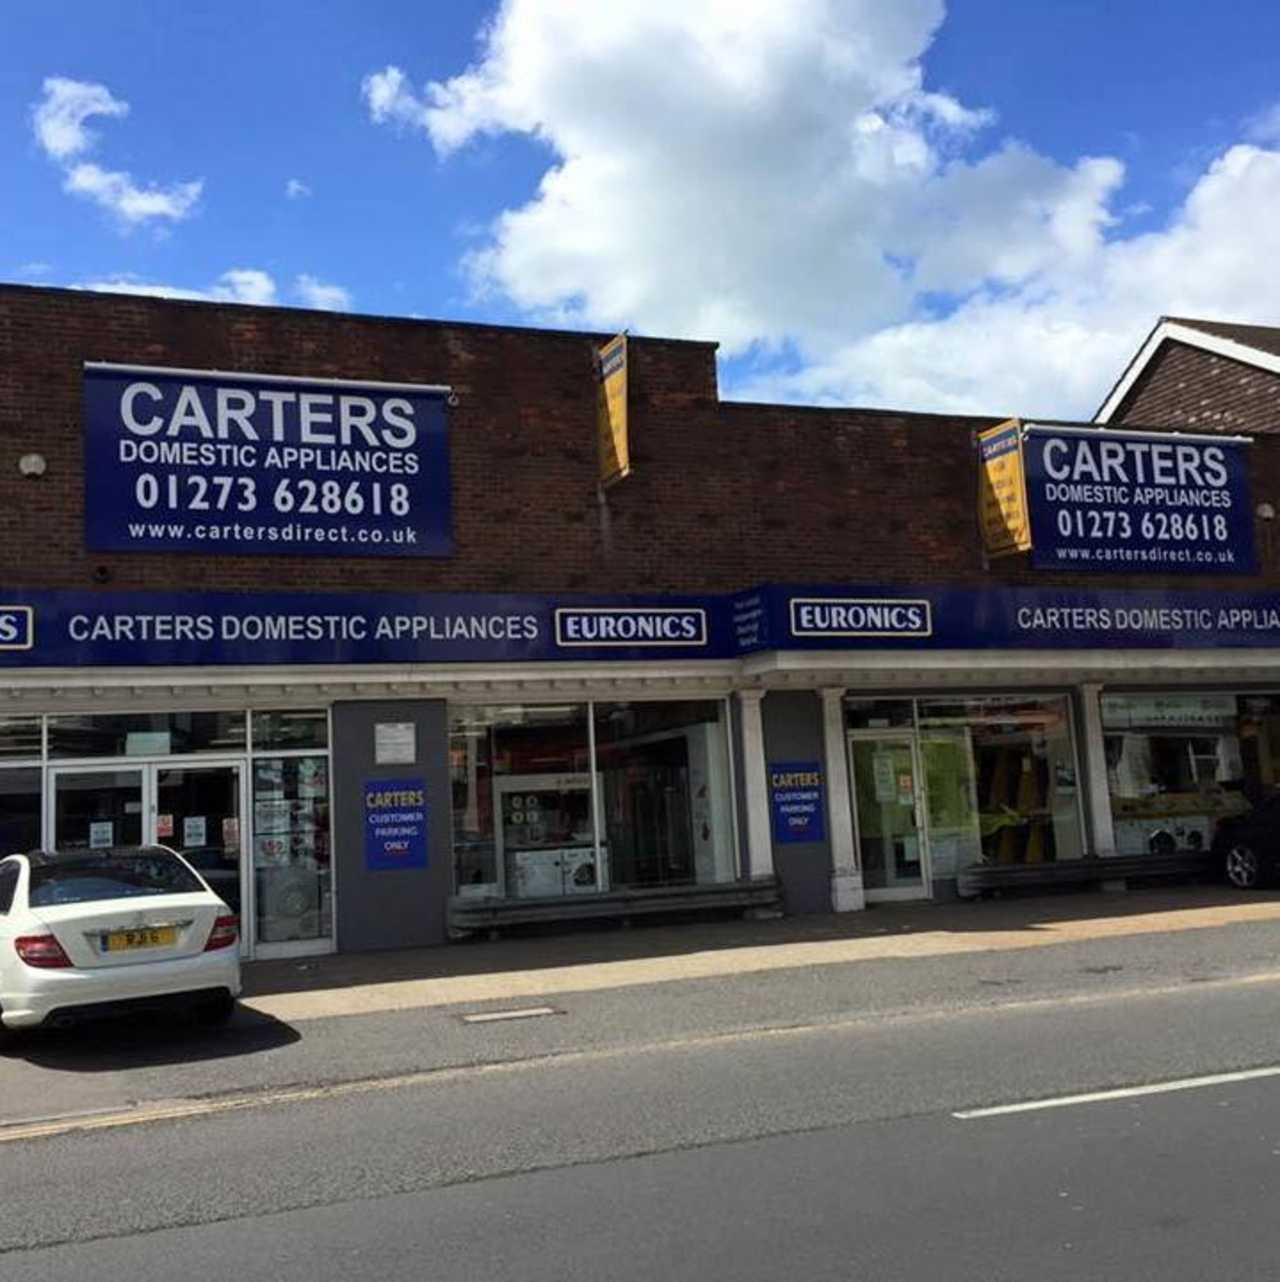 Carters Domestic Appliances - Shopping - White Goods in Brighton